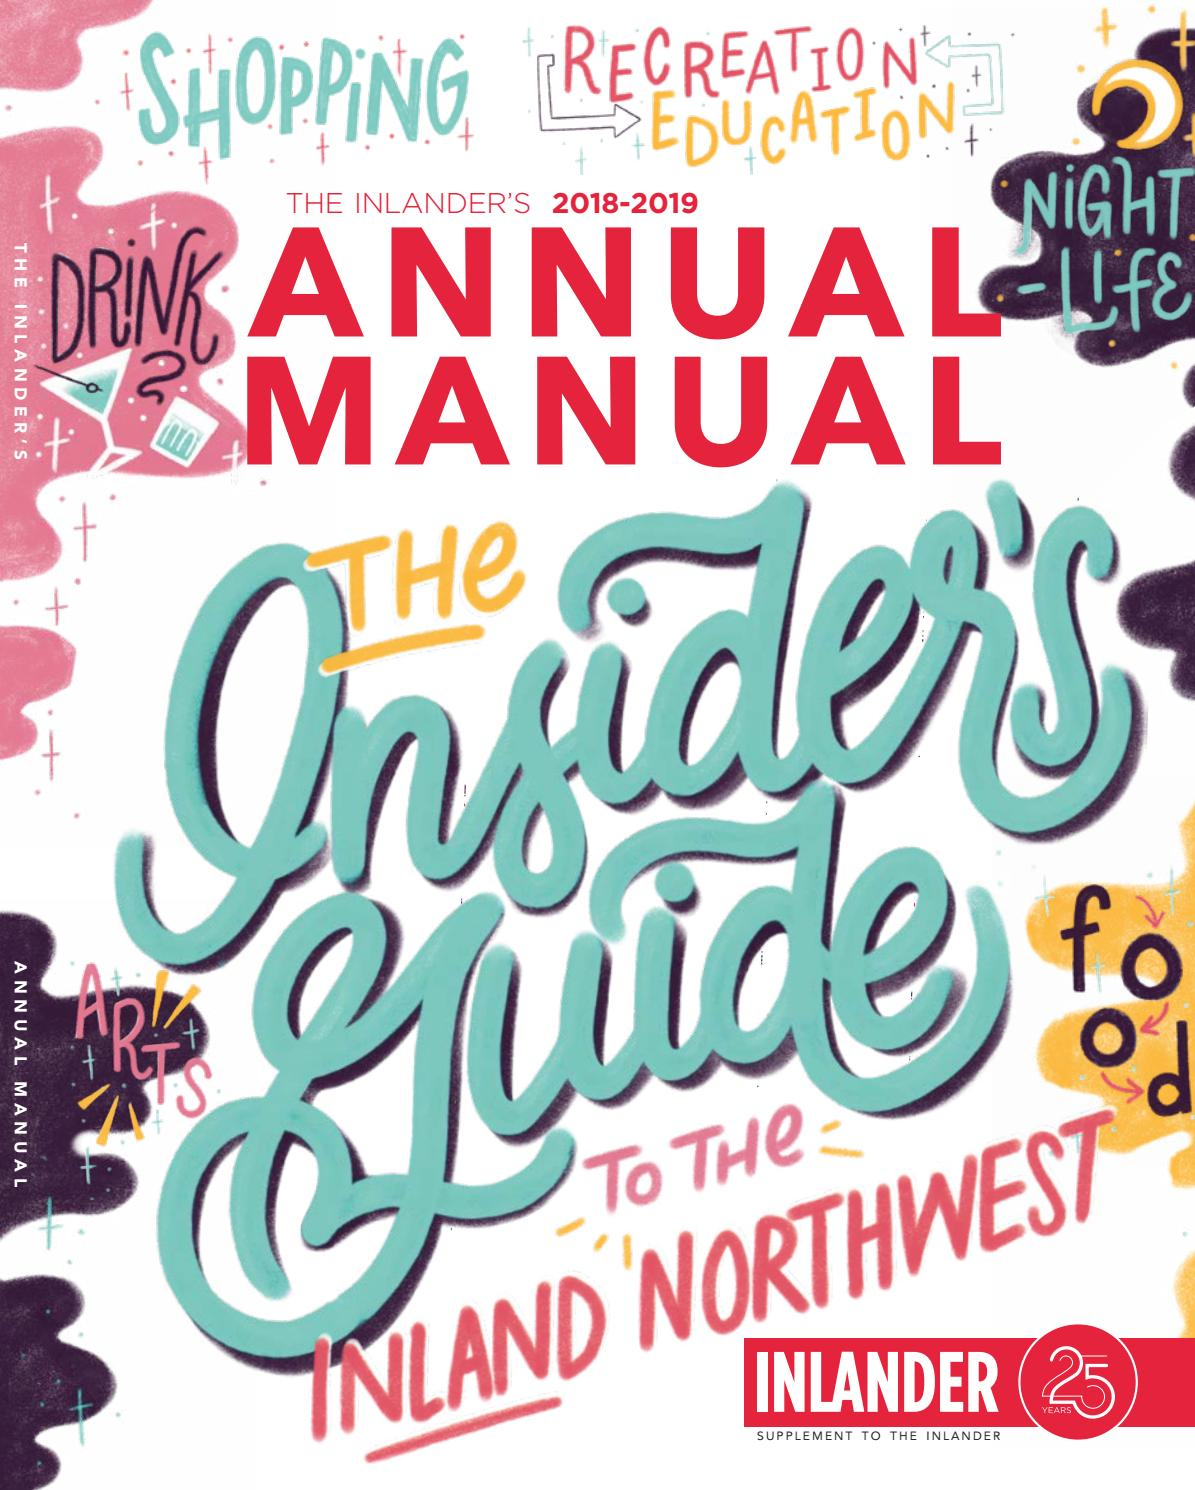 Annual Manual 9/4/2018 by The Inlander - issuu